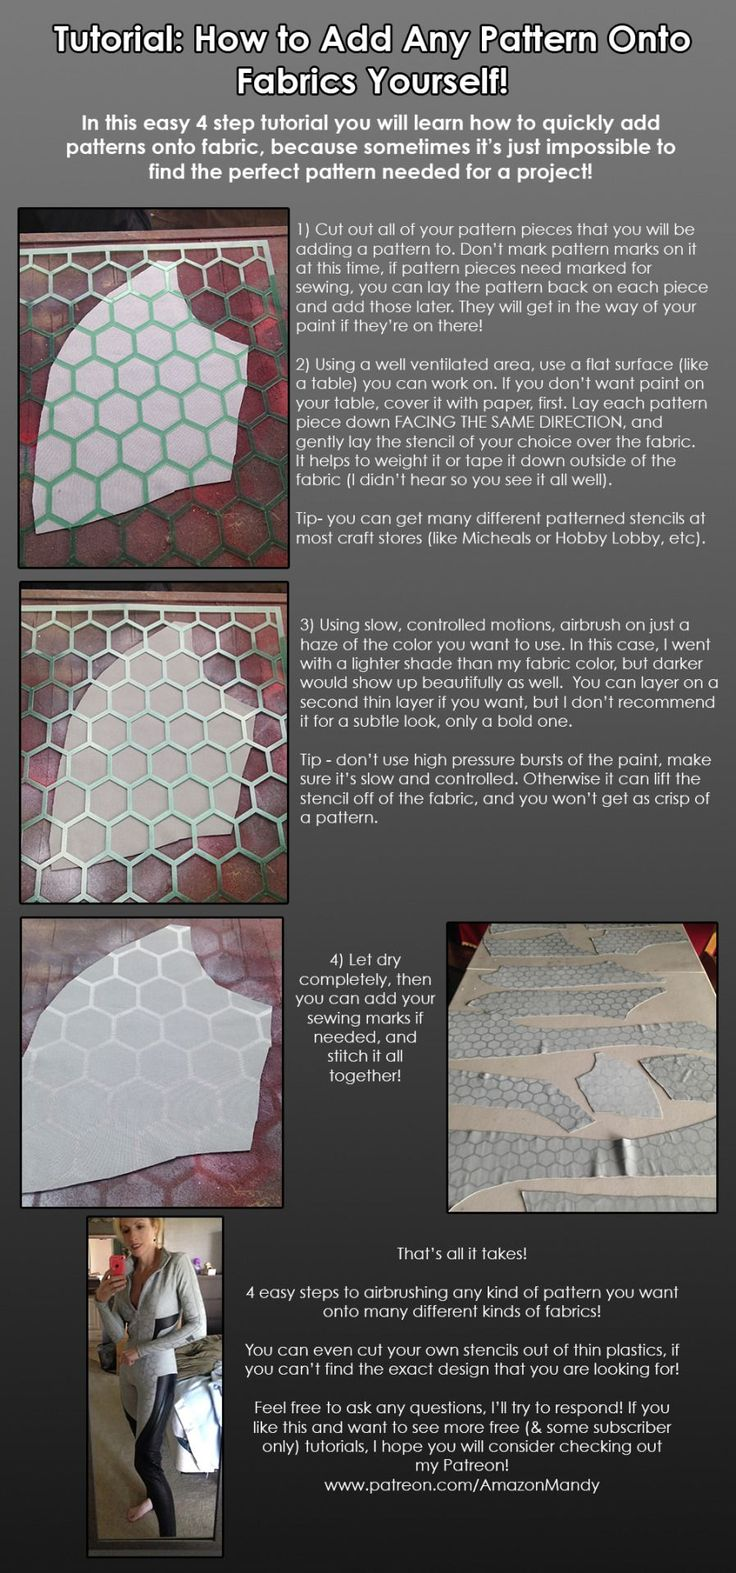 New tutorial: Airbrushing decorative patterns onto fabrics! FULL SIZE ON FACEBOOK An affordable and easy way to add patterns to fabrics when you can't find the perfect fabric! I used this on the next...